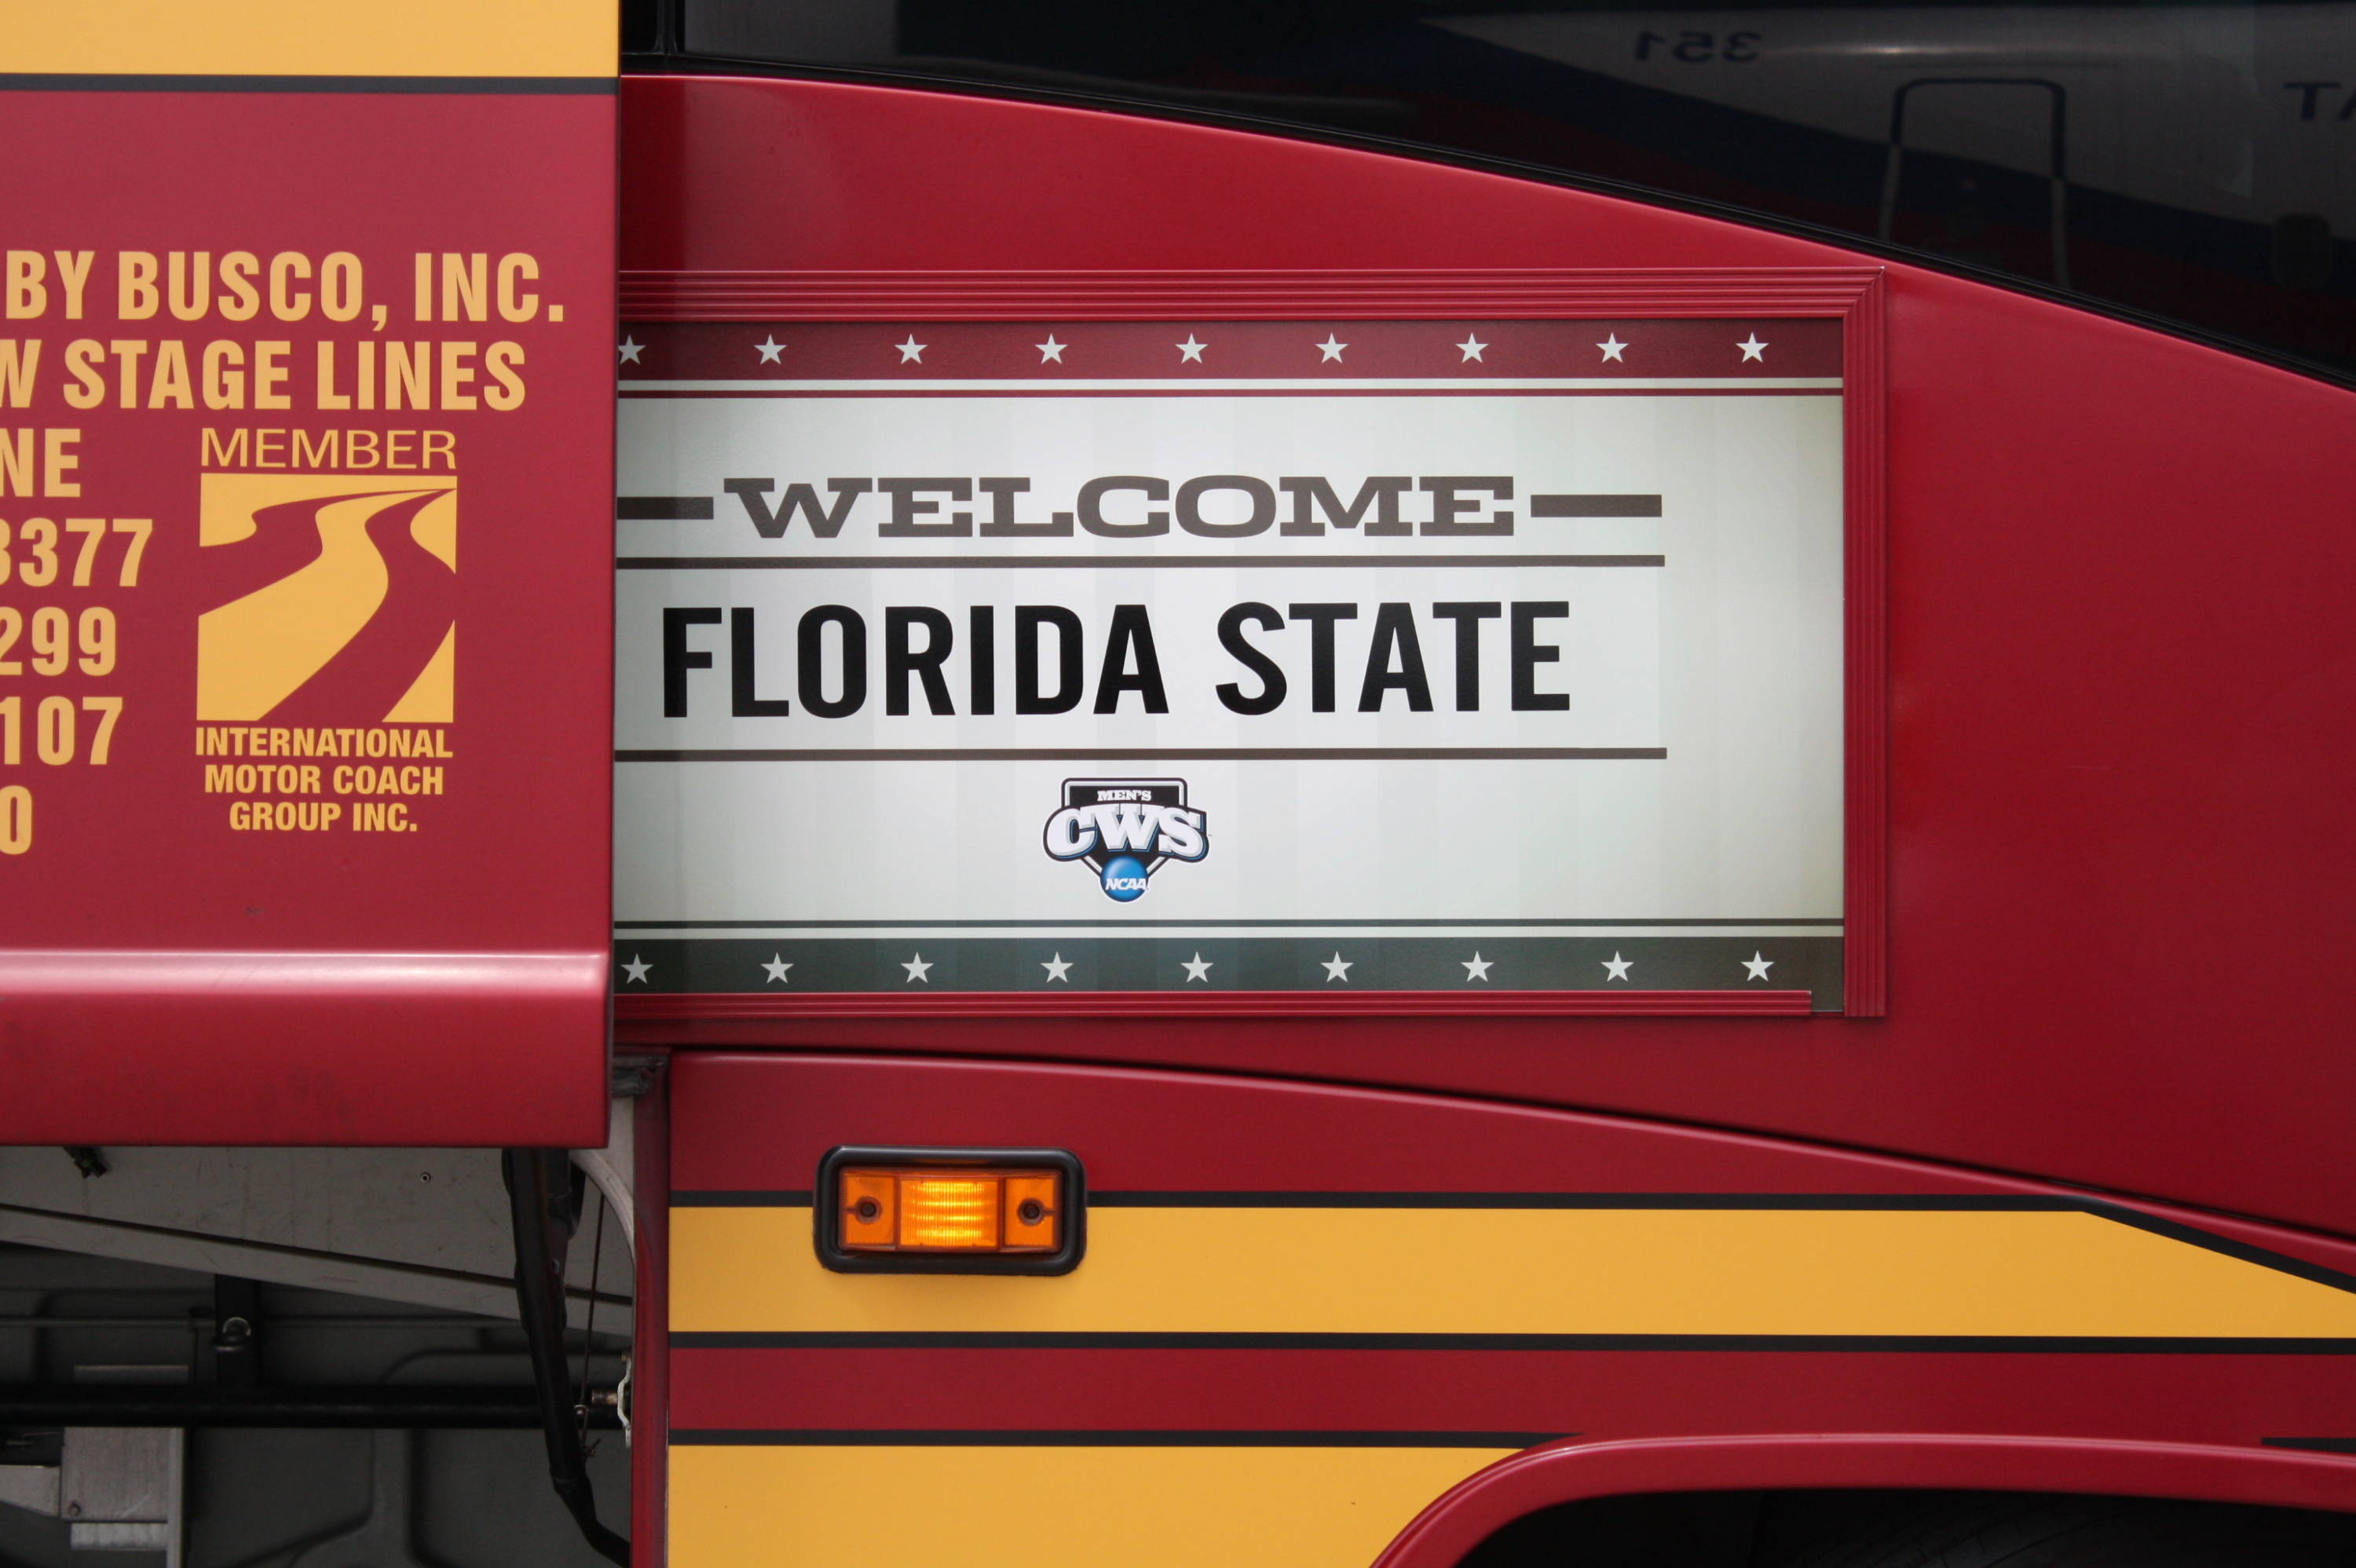 The team bus - all decked out in Garnet & Gold!